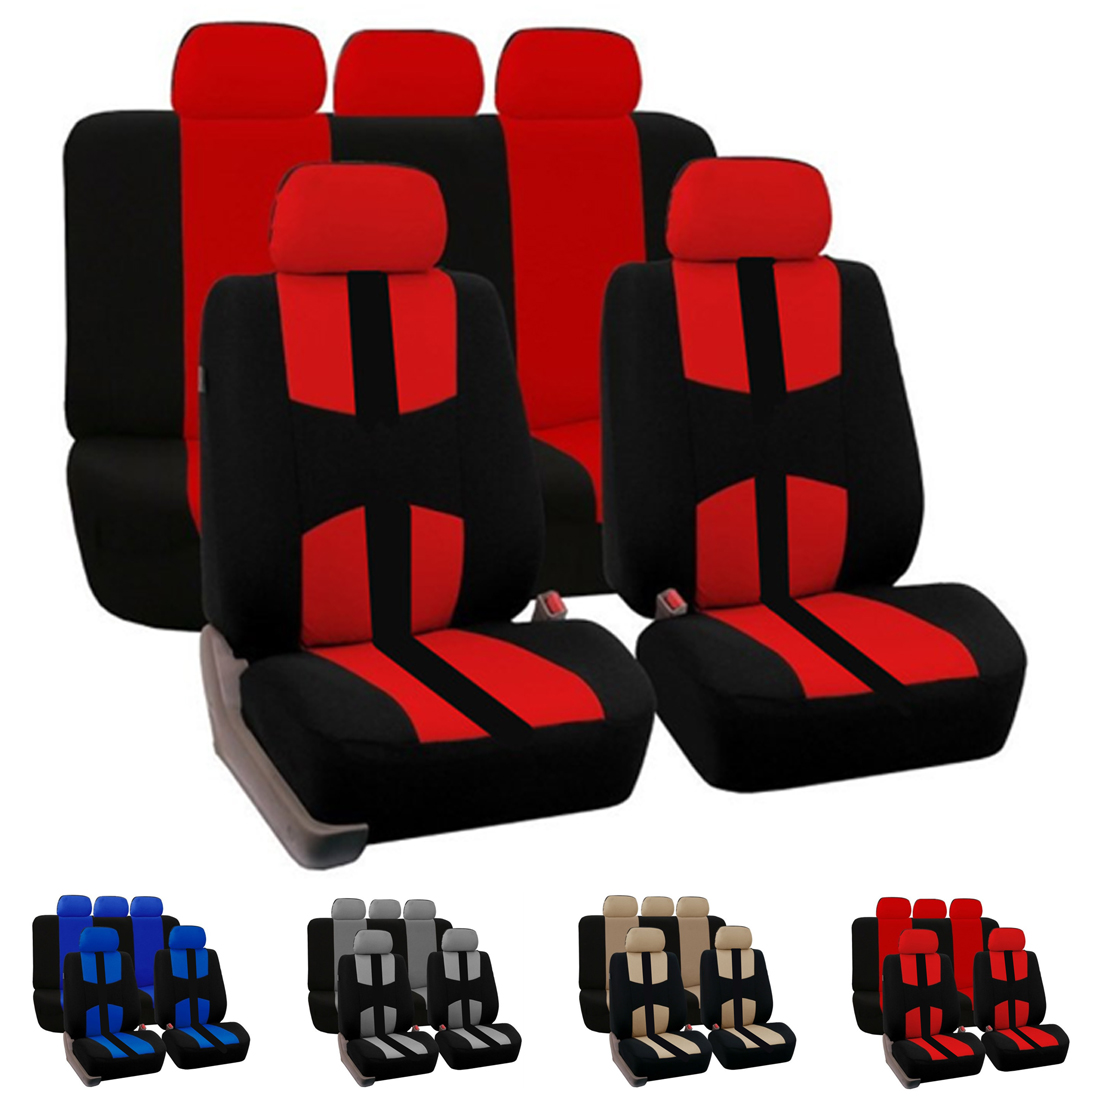 Dewtreetali Front Rear Car Seat Cover Universal Car Seat Protector Four Seasons font b Interior b